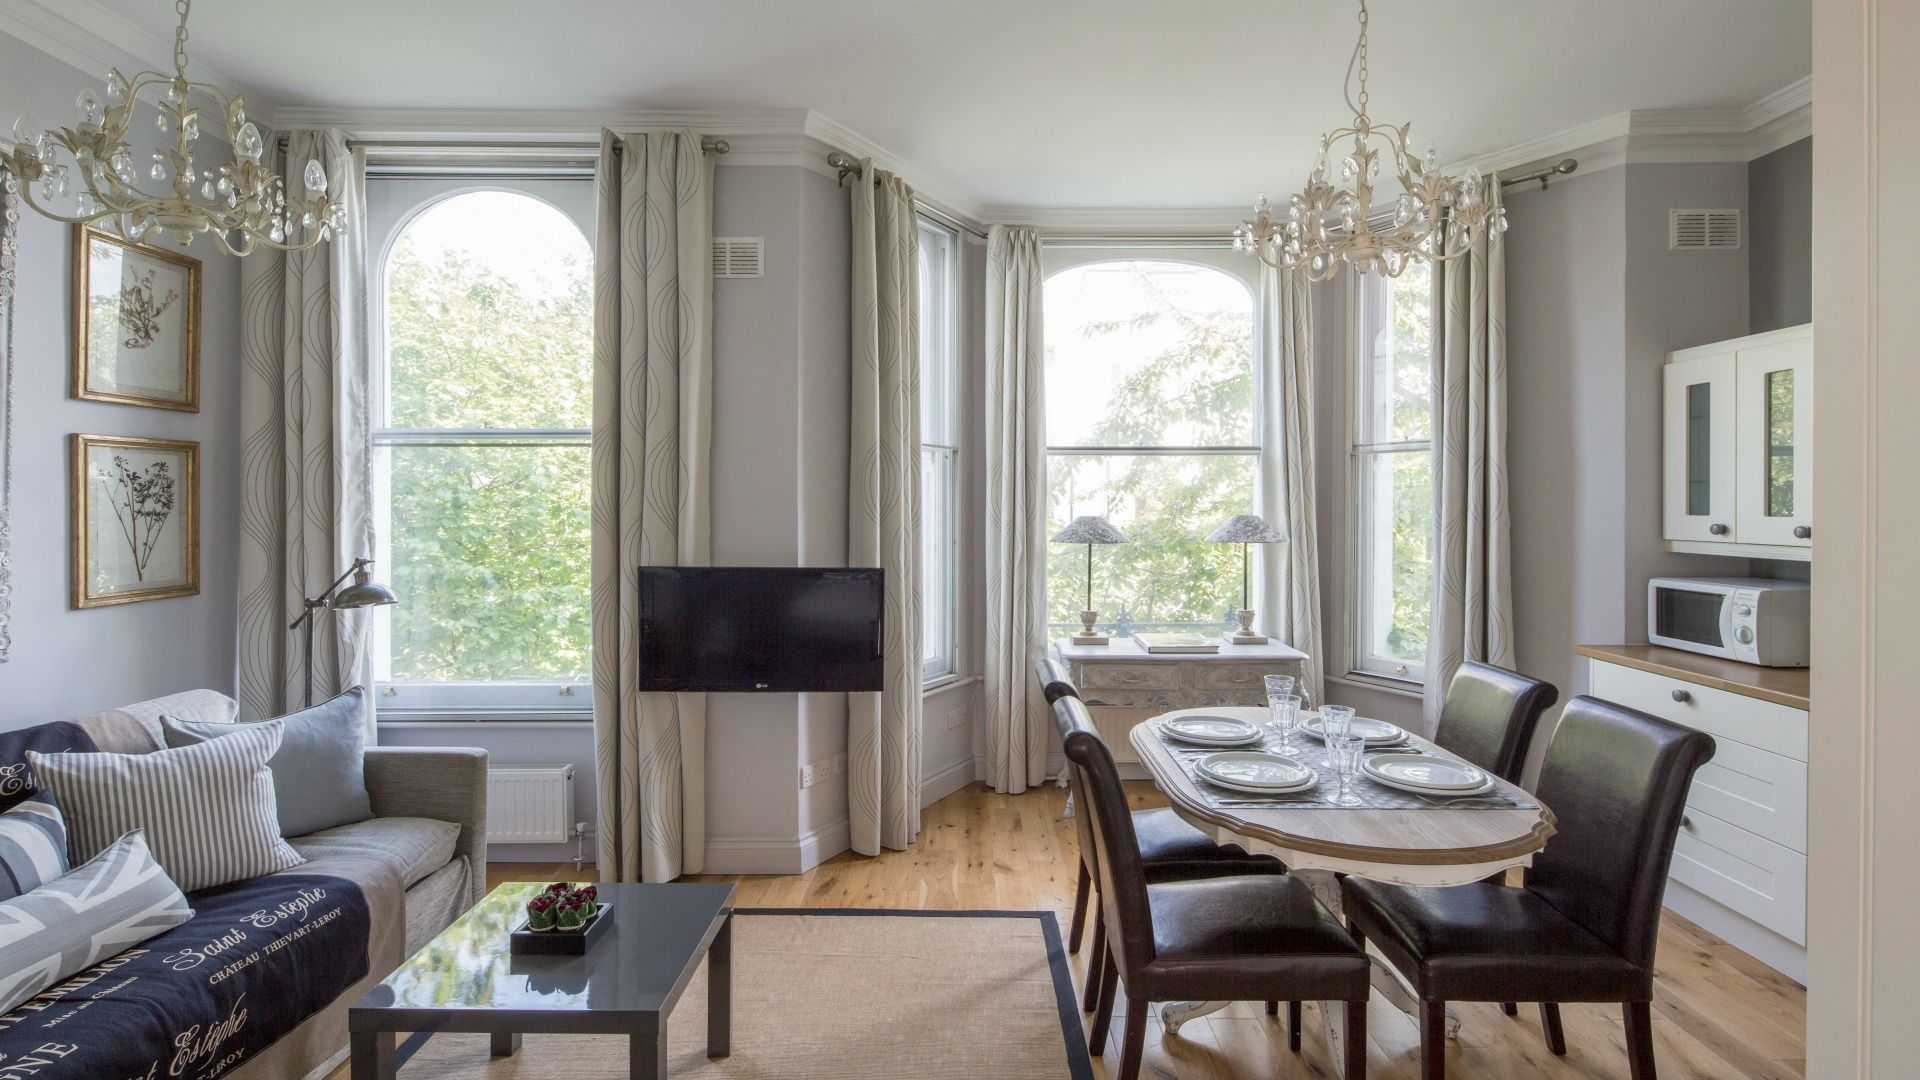 Delightful Beautifully Remodelled 2 Bedroom Vacation Rental In Charming Chelsea Near  Earlu0026 Court And Excellent Transportation To All The Top Spots In London! Nice Look